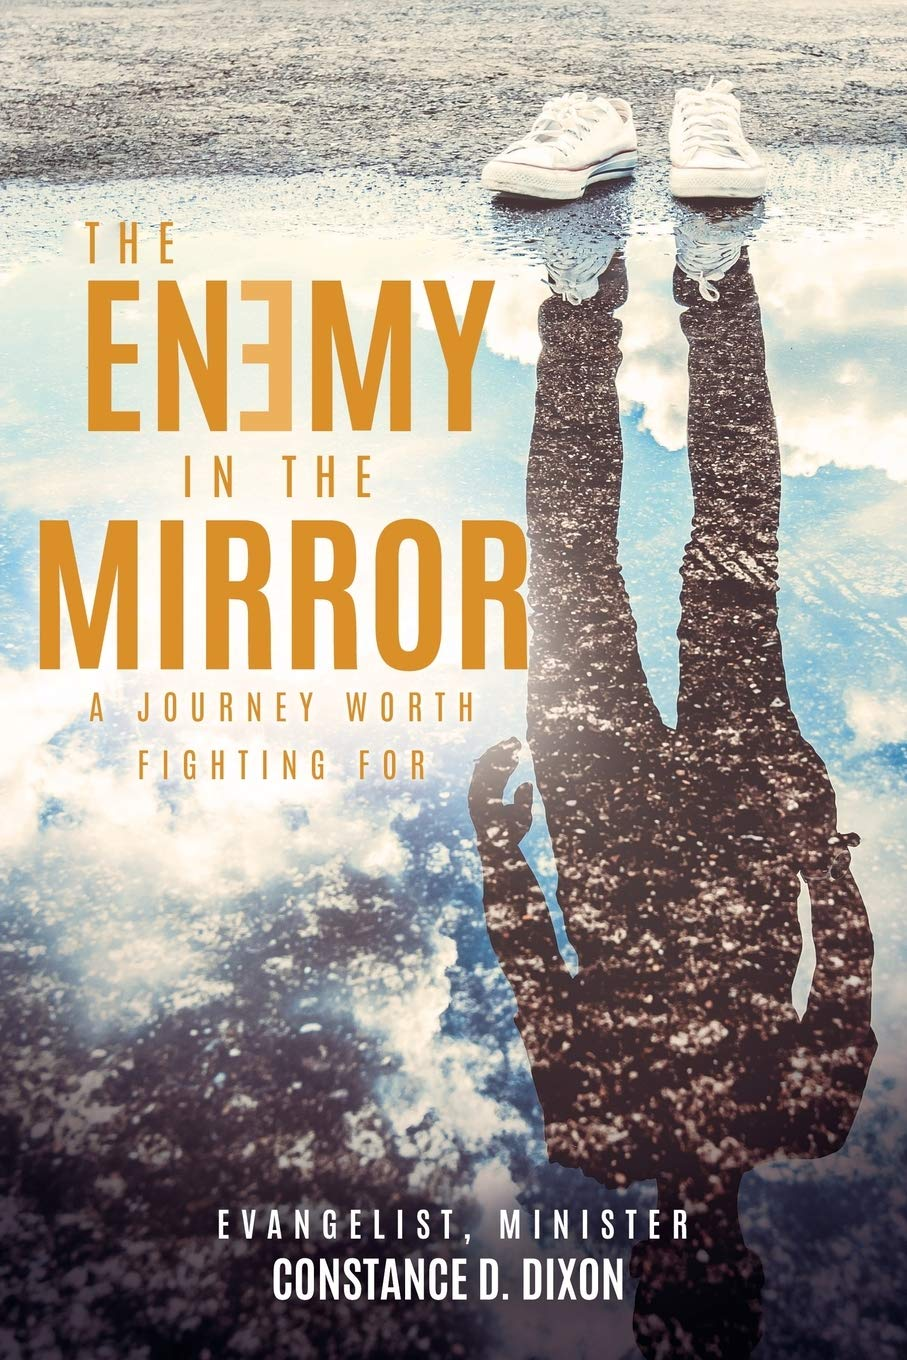 The Enemy in the Mirror: A Journey Worth Fighting for by Evg. Constance D. Dixon